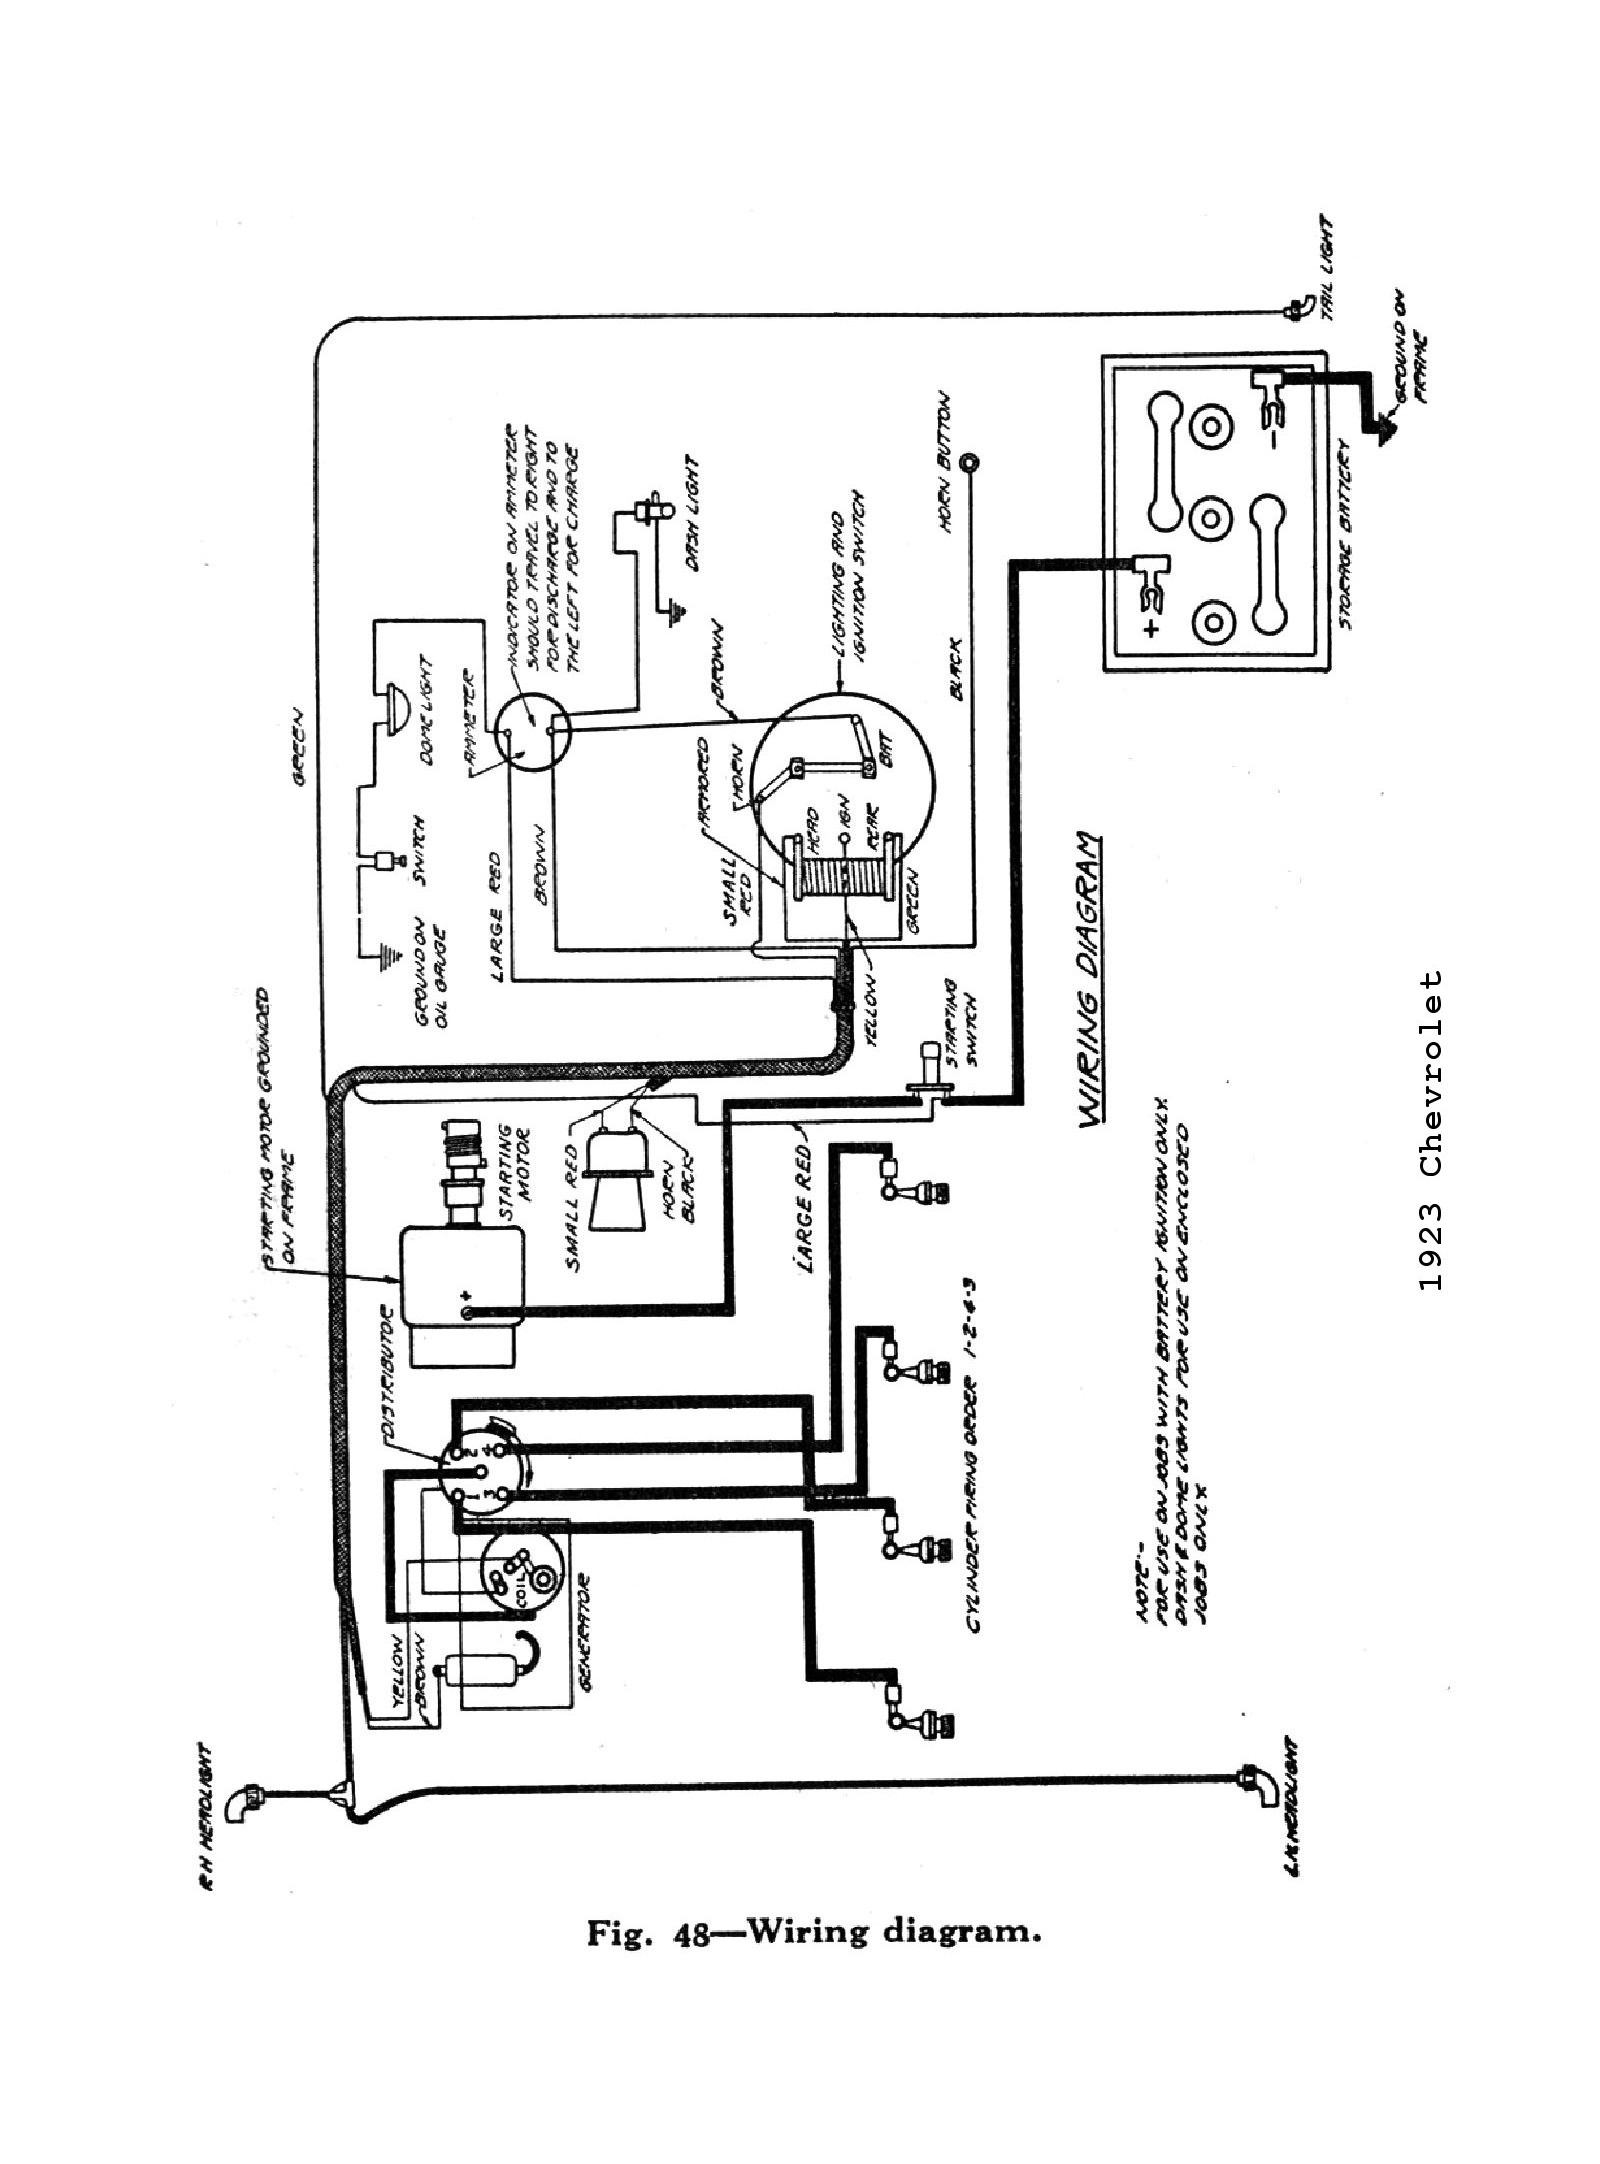 23model chevy wiring diagrams 1960 chevy impala wiring diagram at crackthecode.co